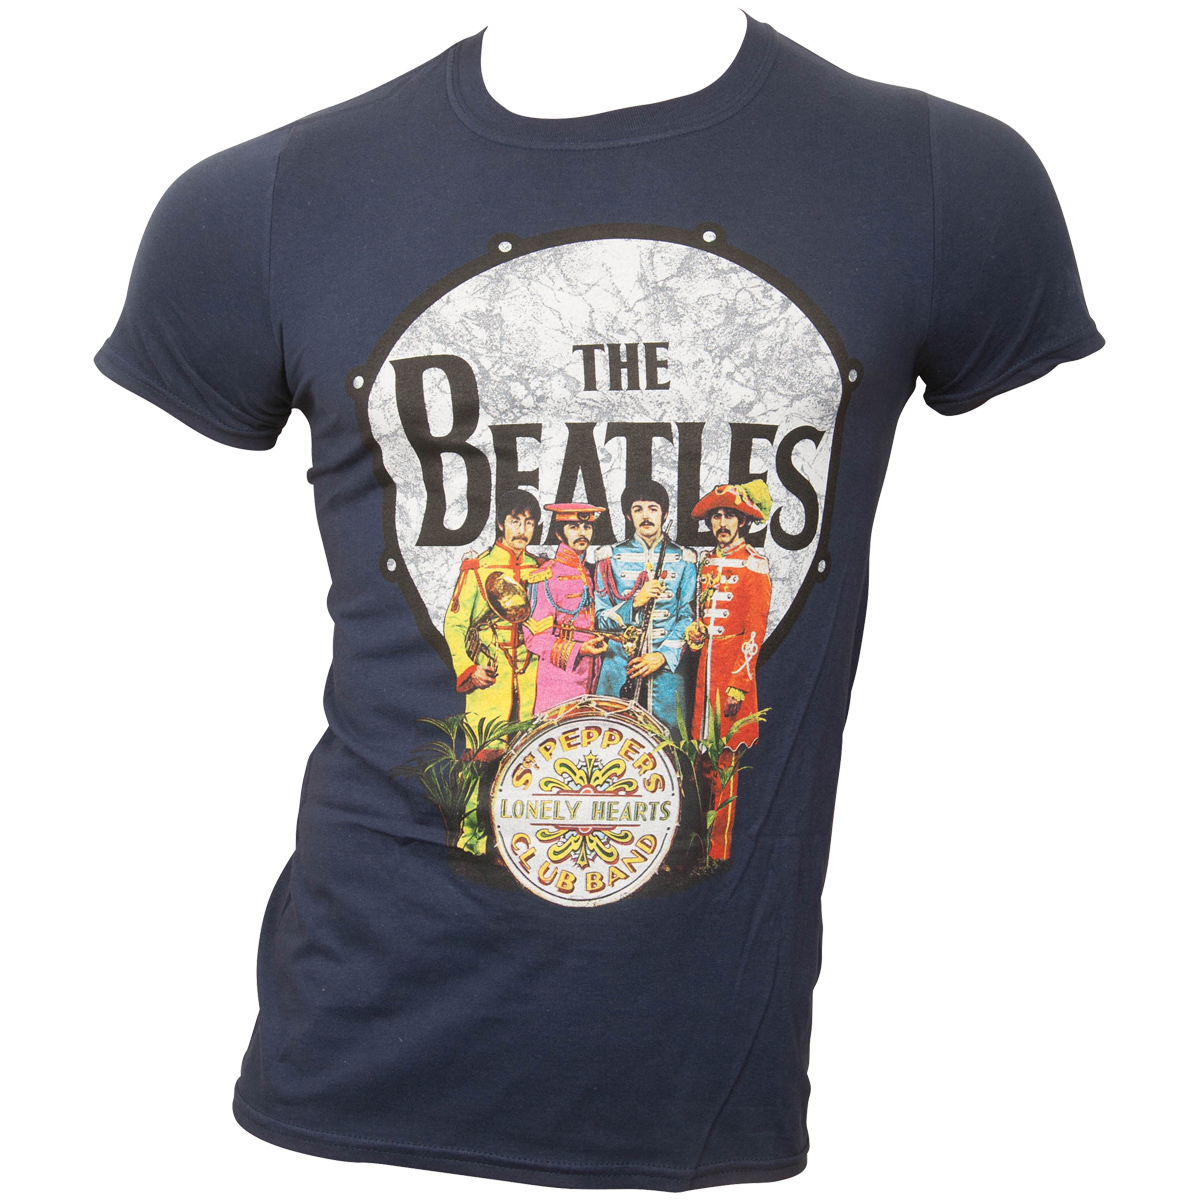 The Beatles - T-Shirt Sgt Pepper & Drum - blau